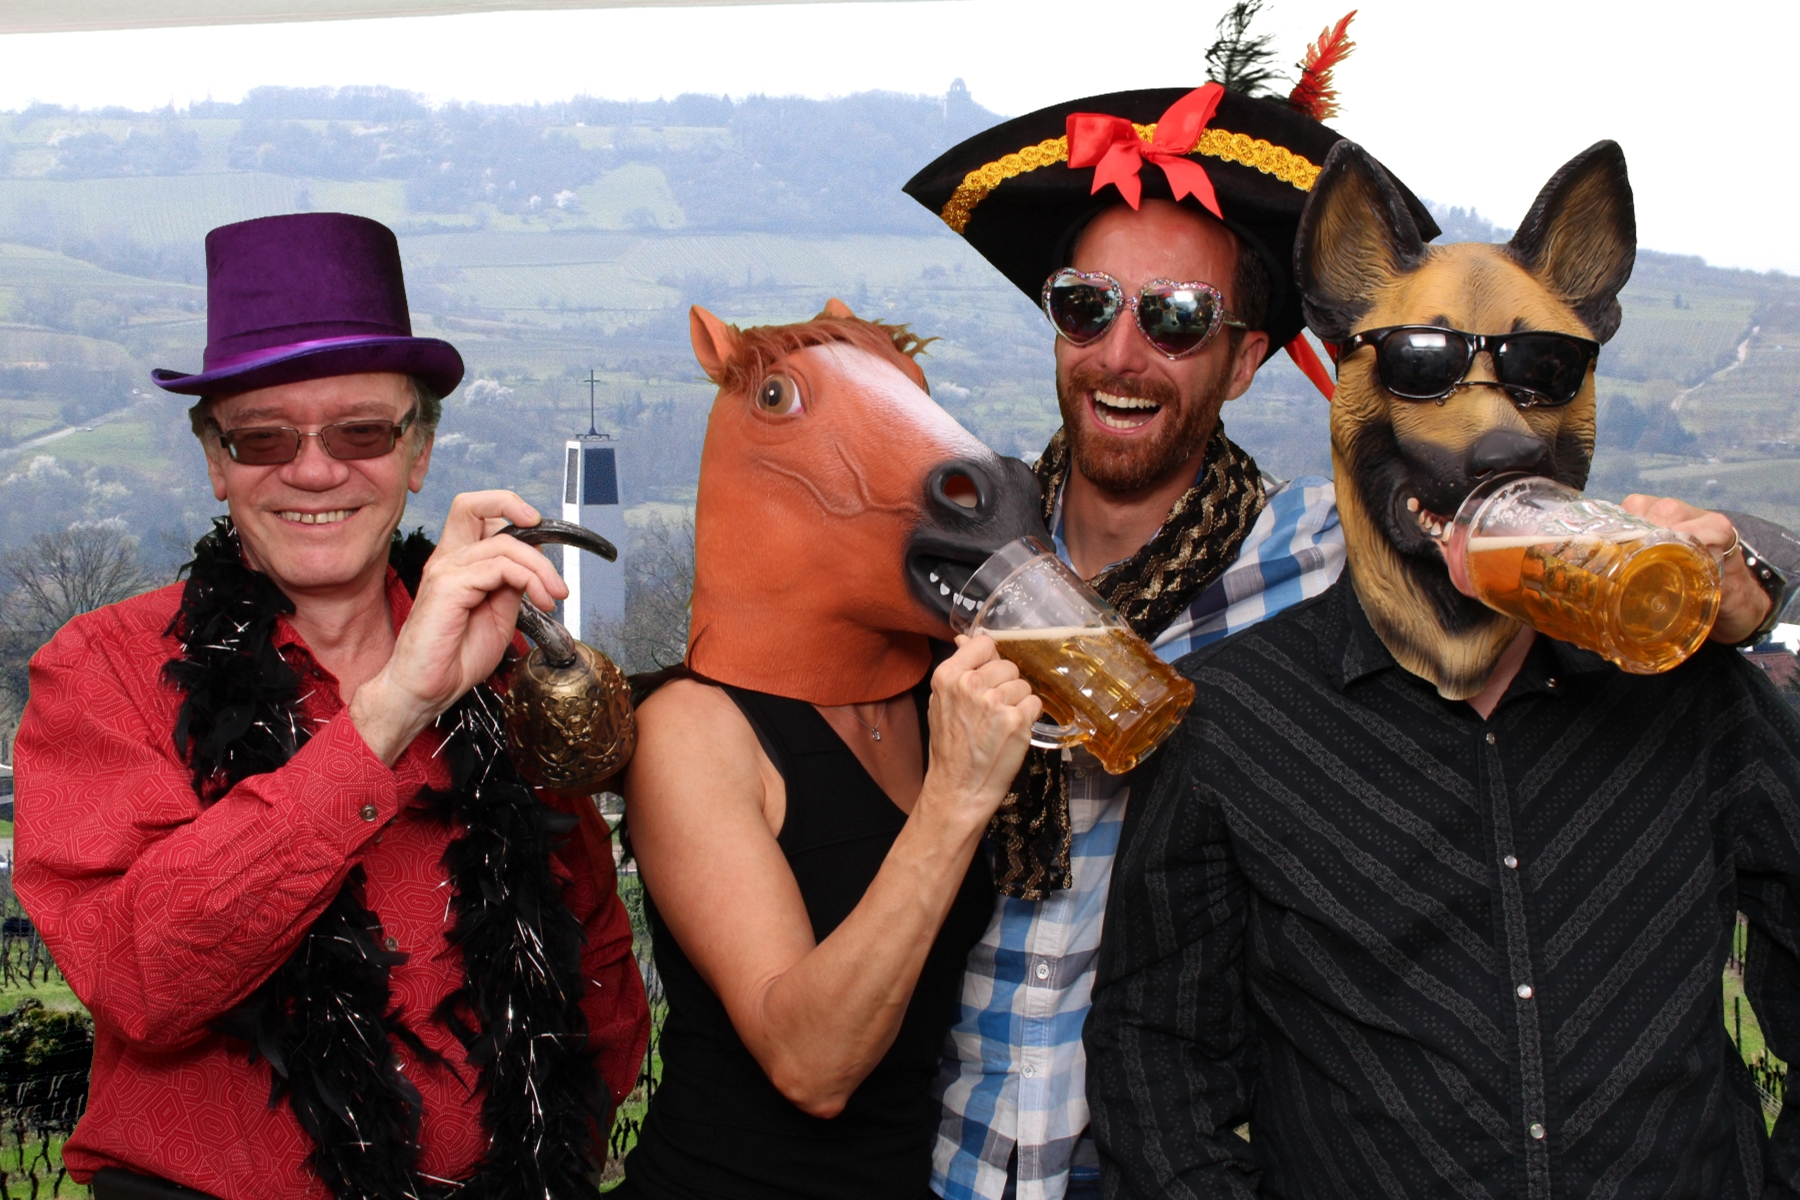 VTI Day off the wall photo booth 1.jpg